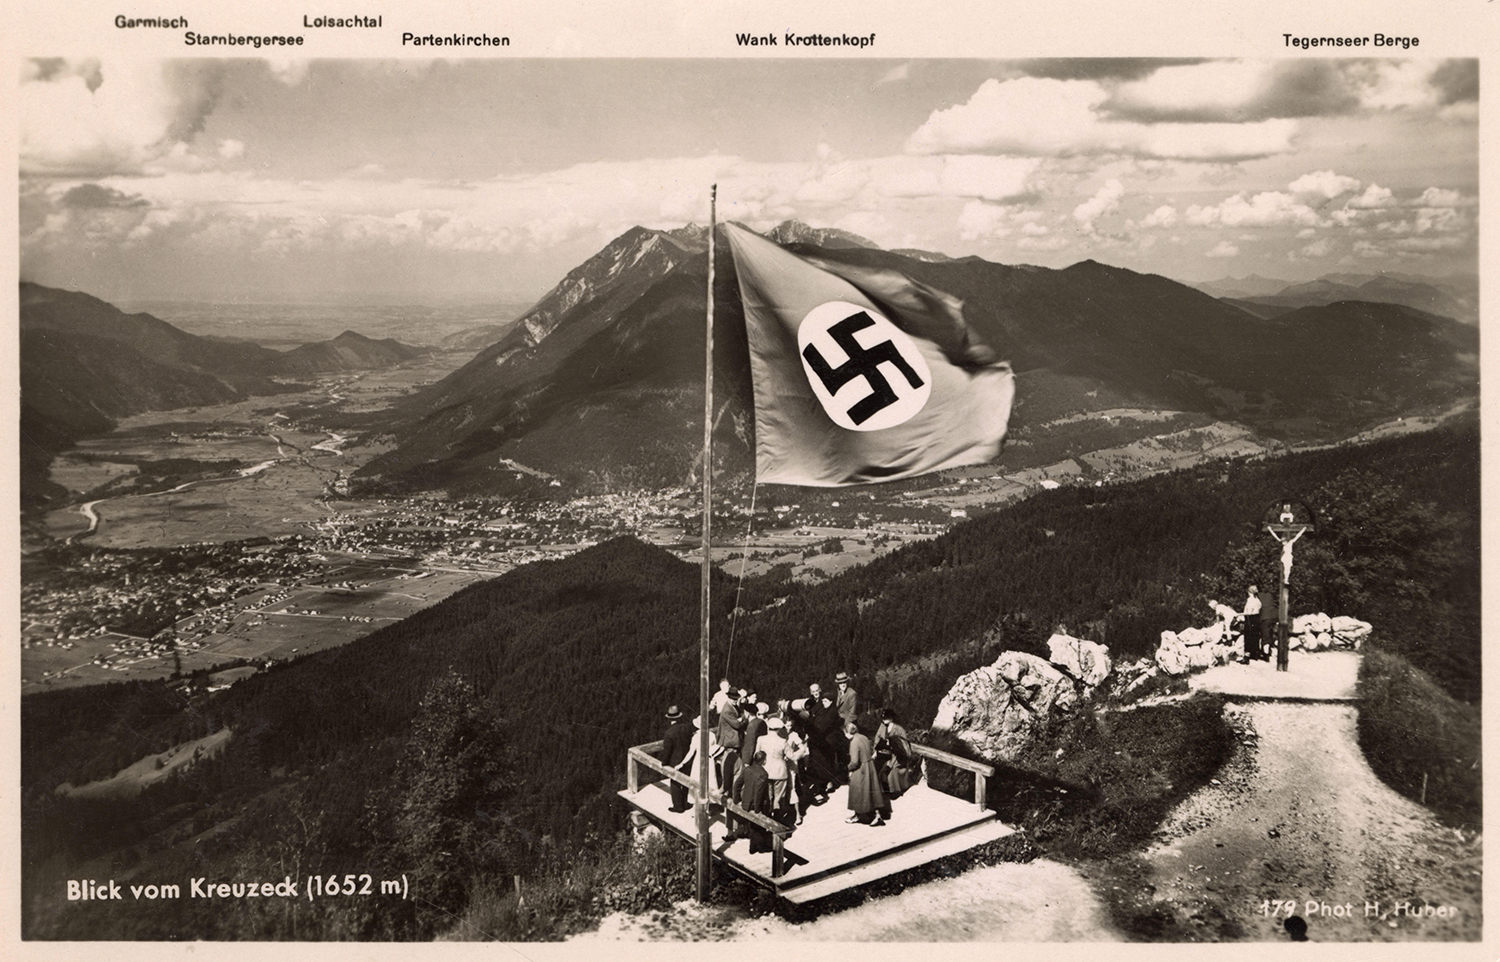 View from the Wetterstein mountain range in Bavaria, mid 1930s.